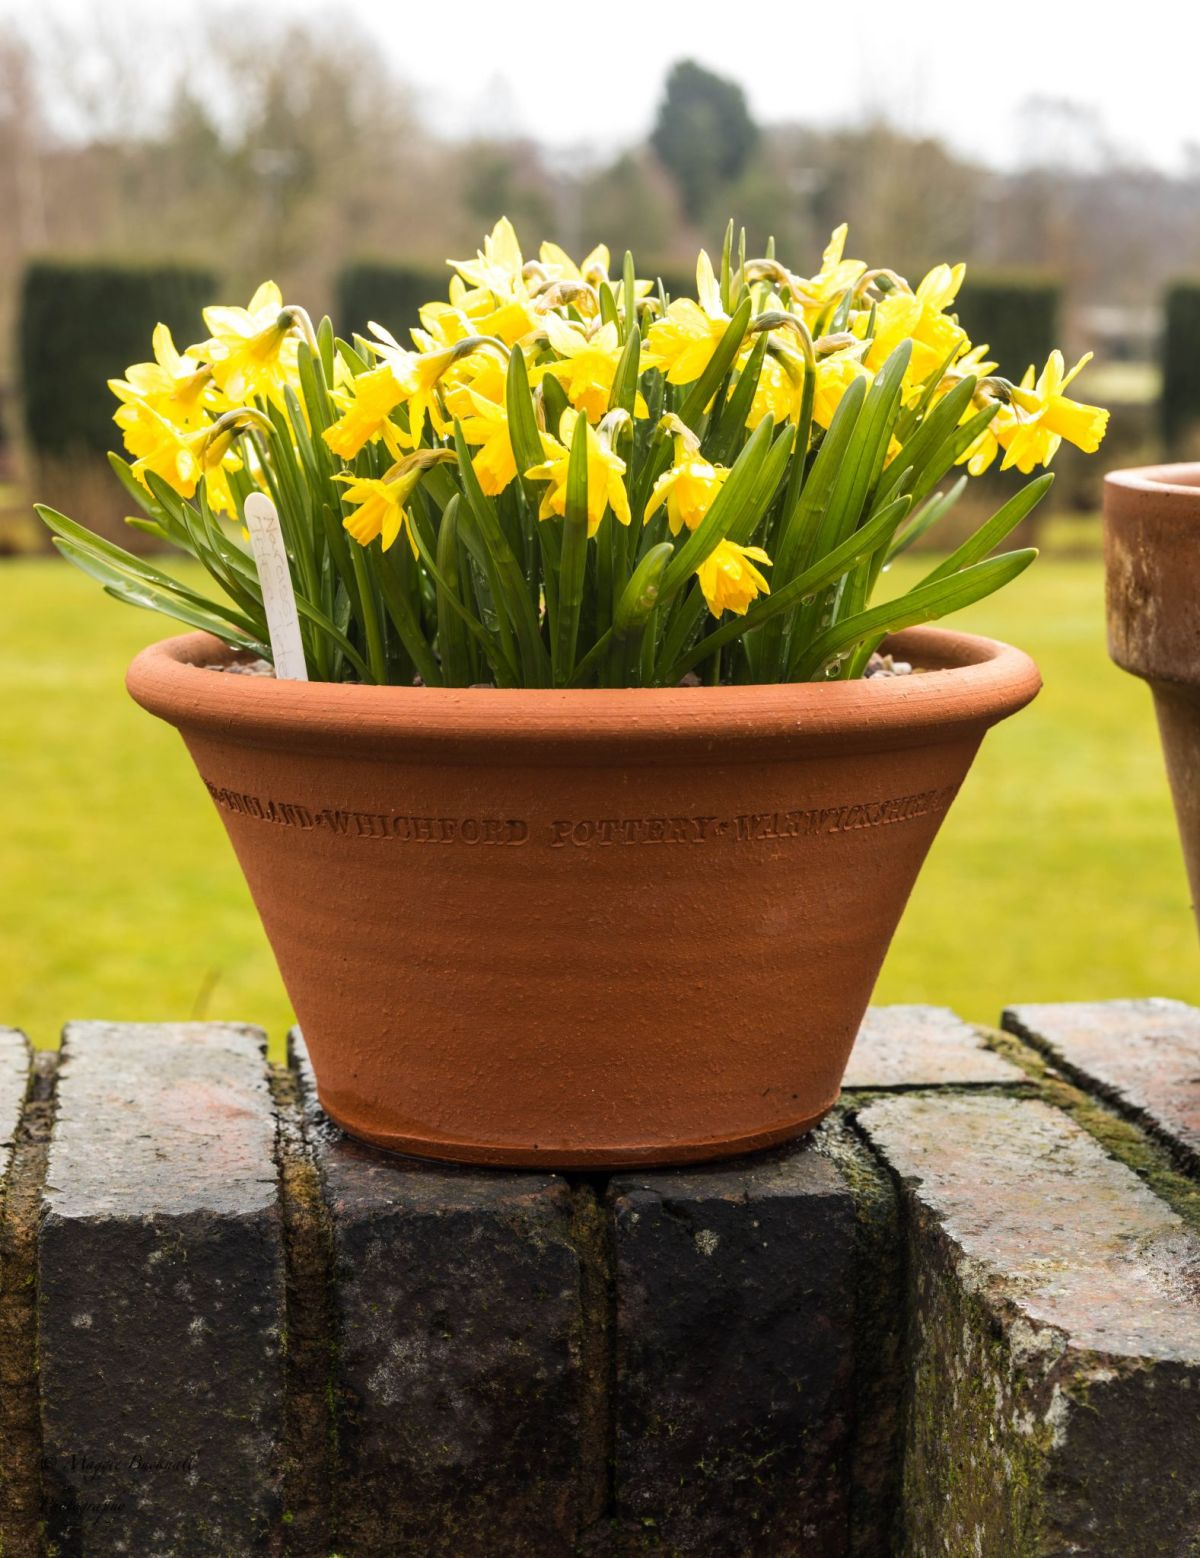 Narcissus 'Tete-a-Tete' on the Terrace, photograph by Maggie Bucknall, Now and Then March, Winterbourne House and Garden, Digging for Dirt